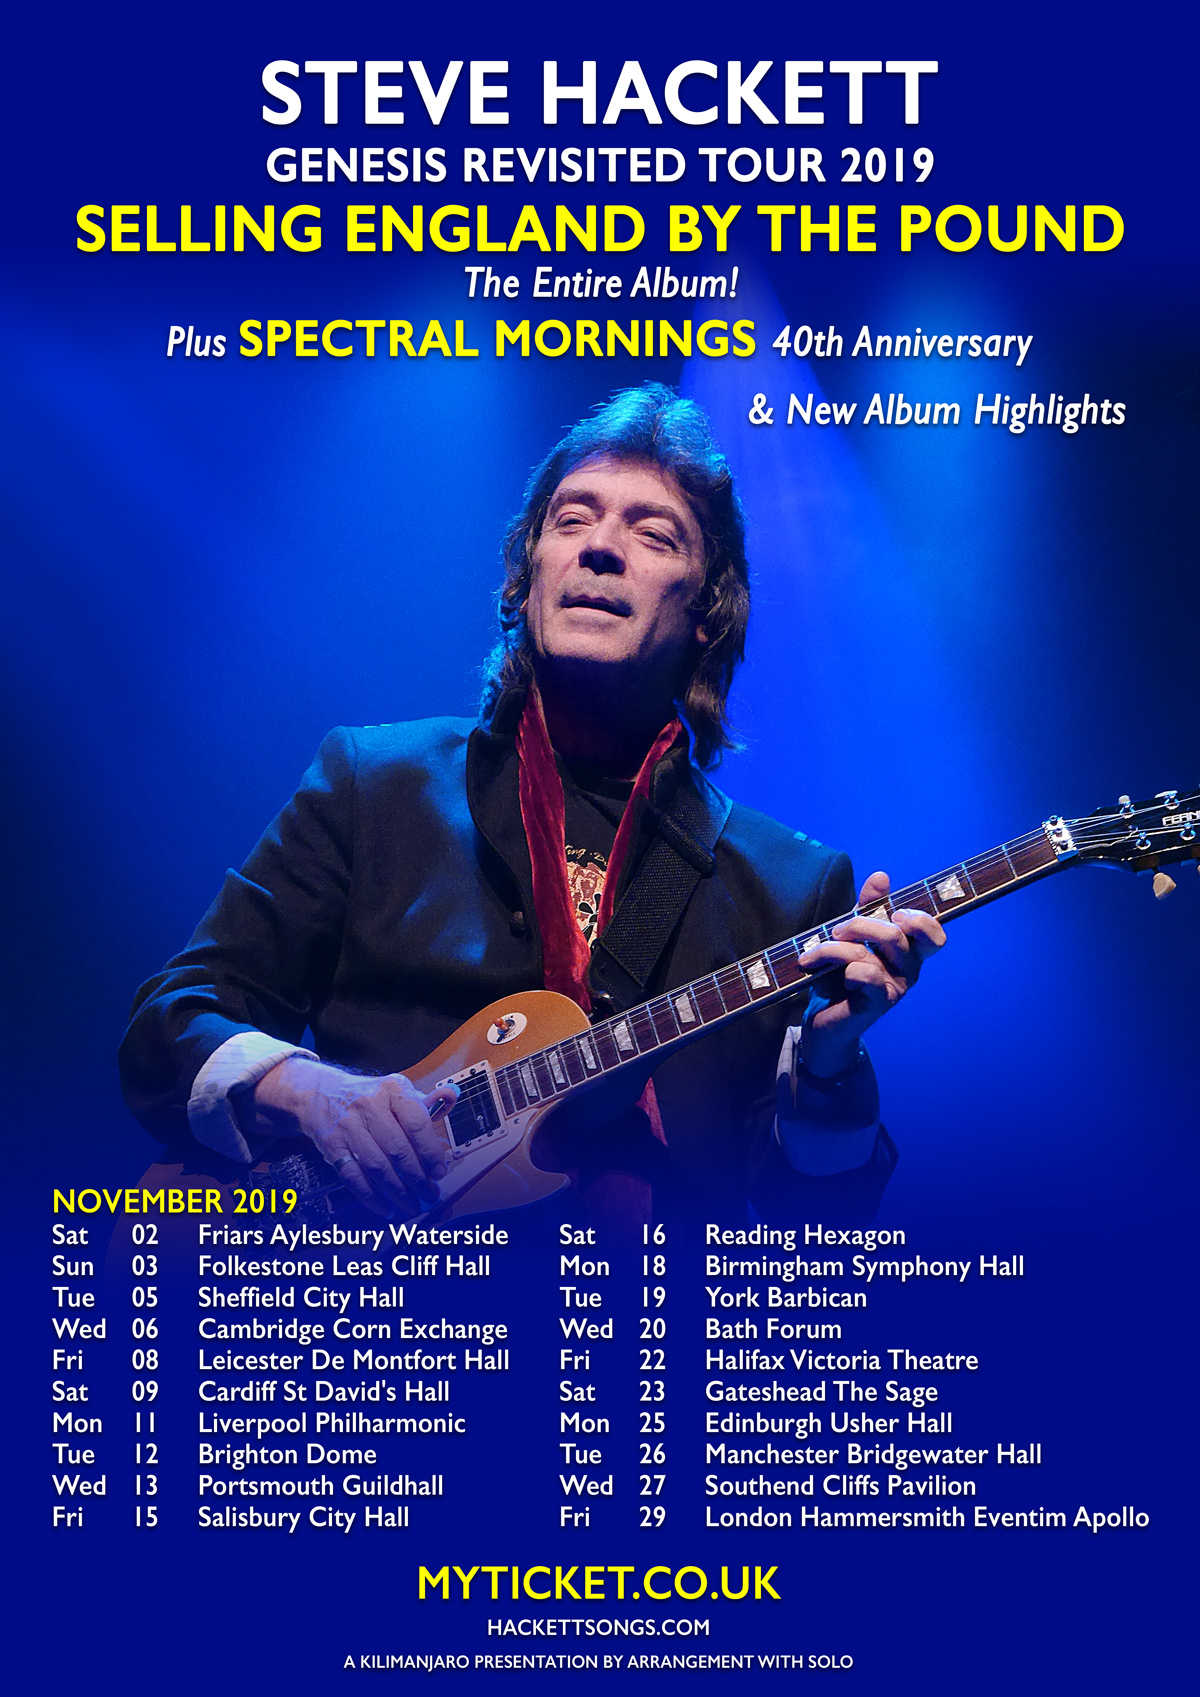 Steve Hackett Genesis Revisited 2019 - Selling England By The Pound - The Entire Album